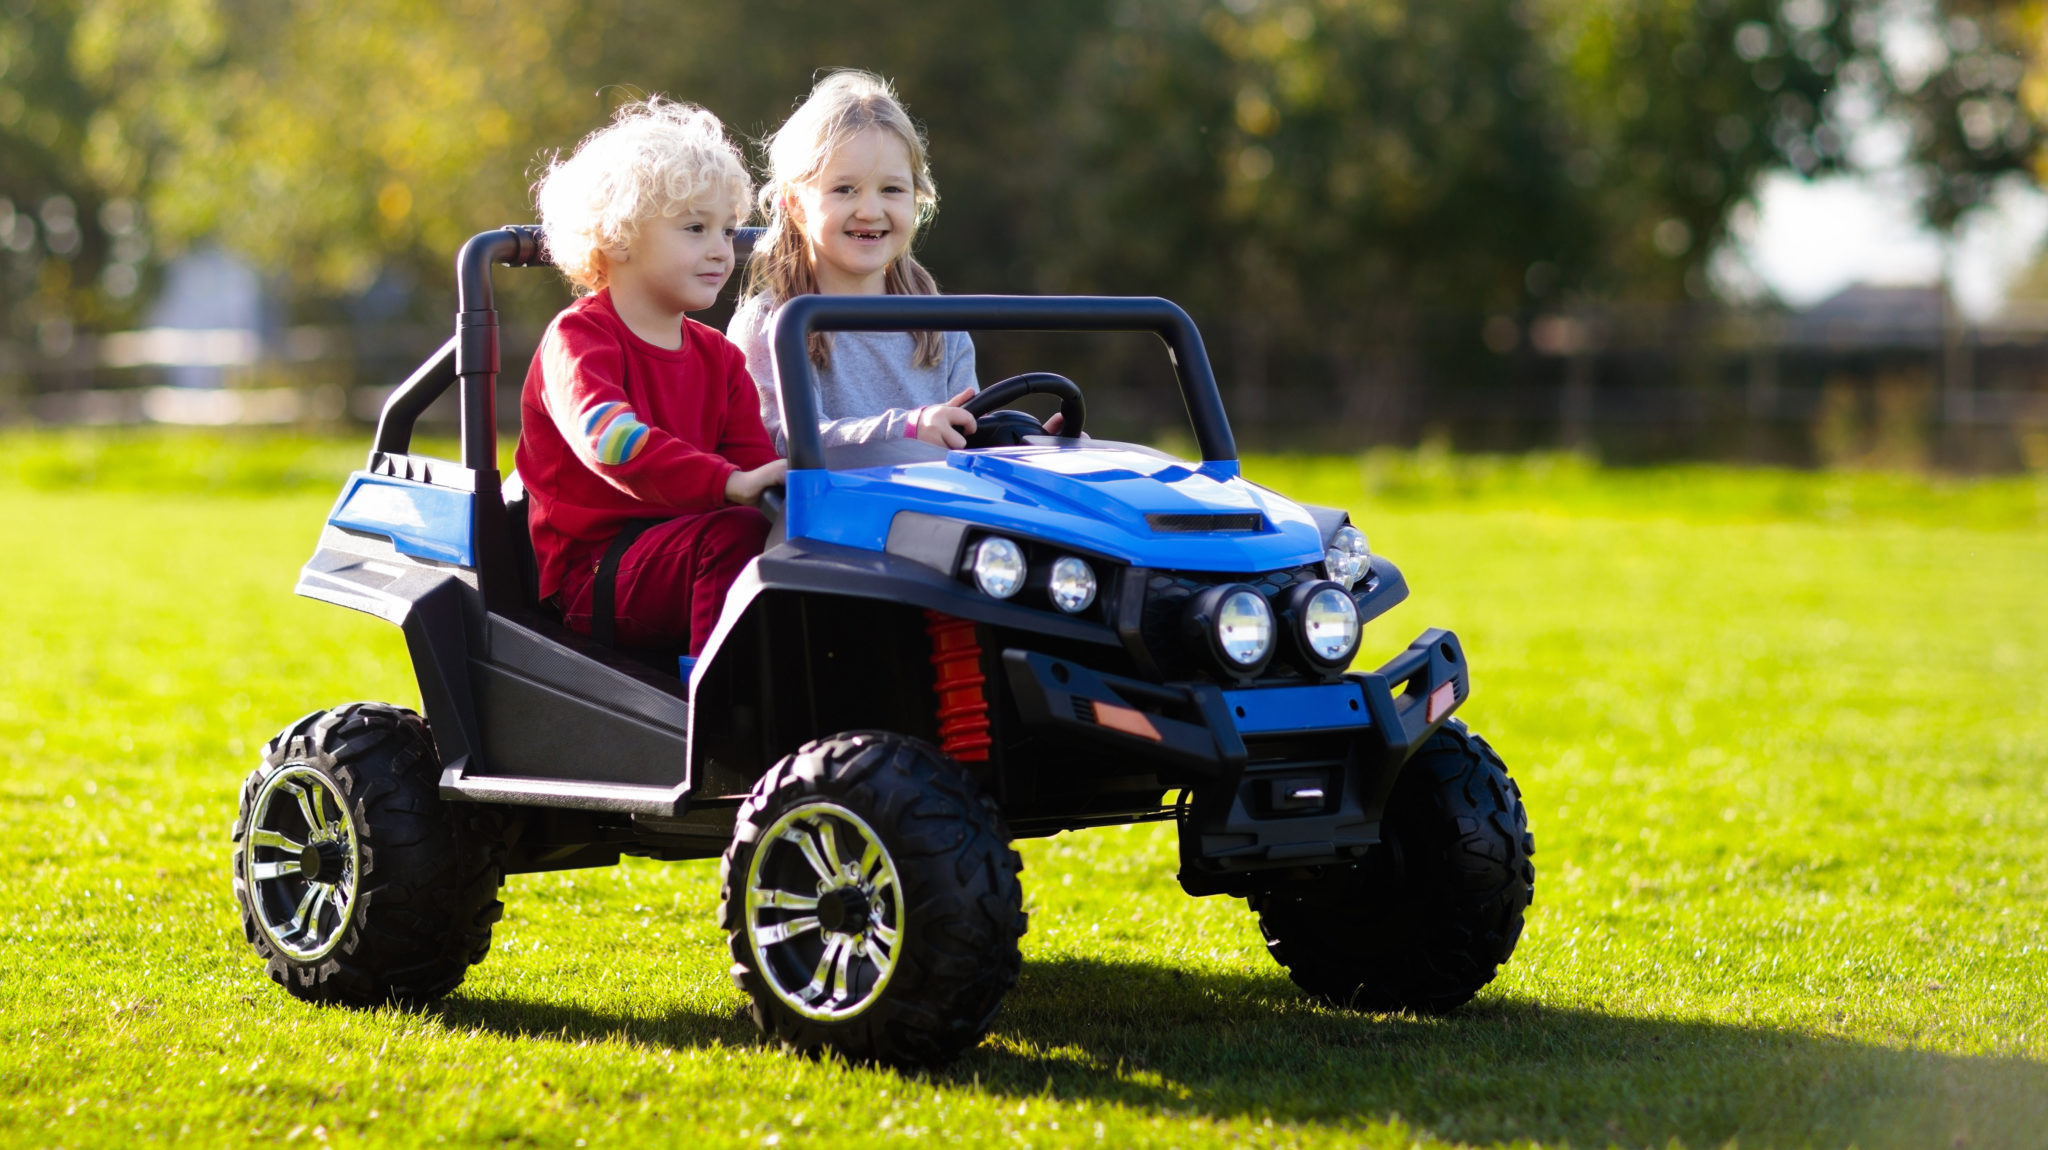 What do 8 year olds like to do for fun? Ride Power Wheels with their friends!